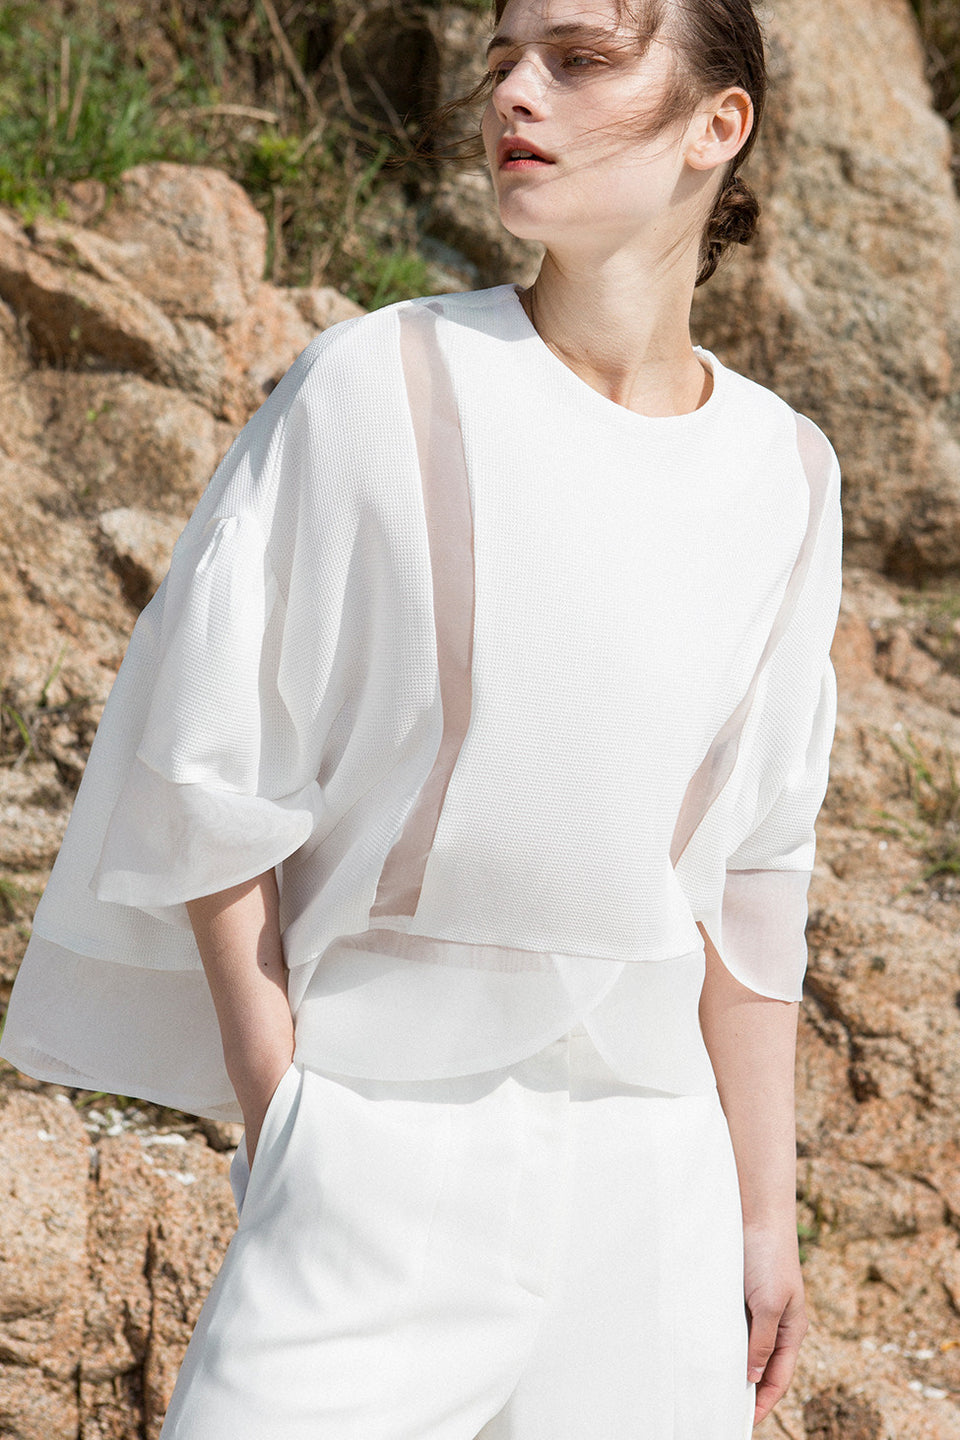 The Cicely Top in White featuring round collar, dropped shoulder, octopus sleeve. Concealed side zip closure at one shoulder. Pull on.